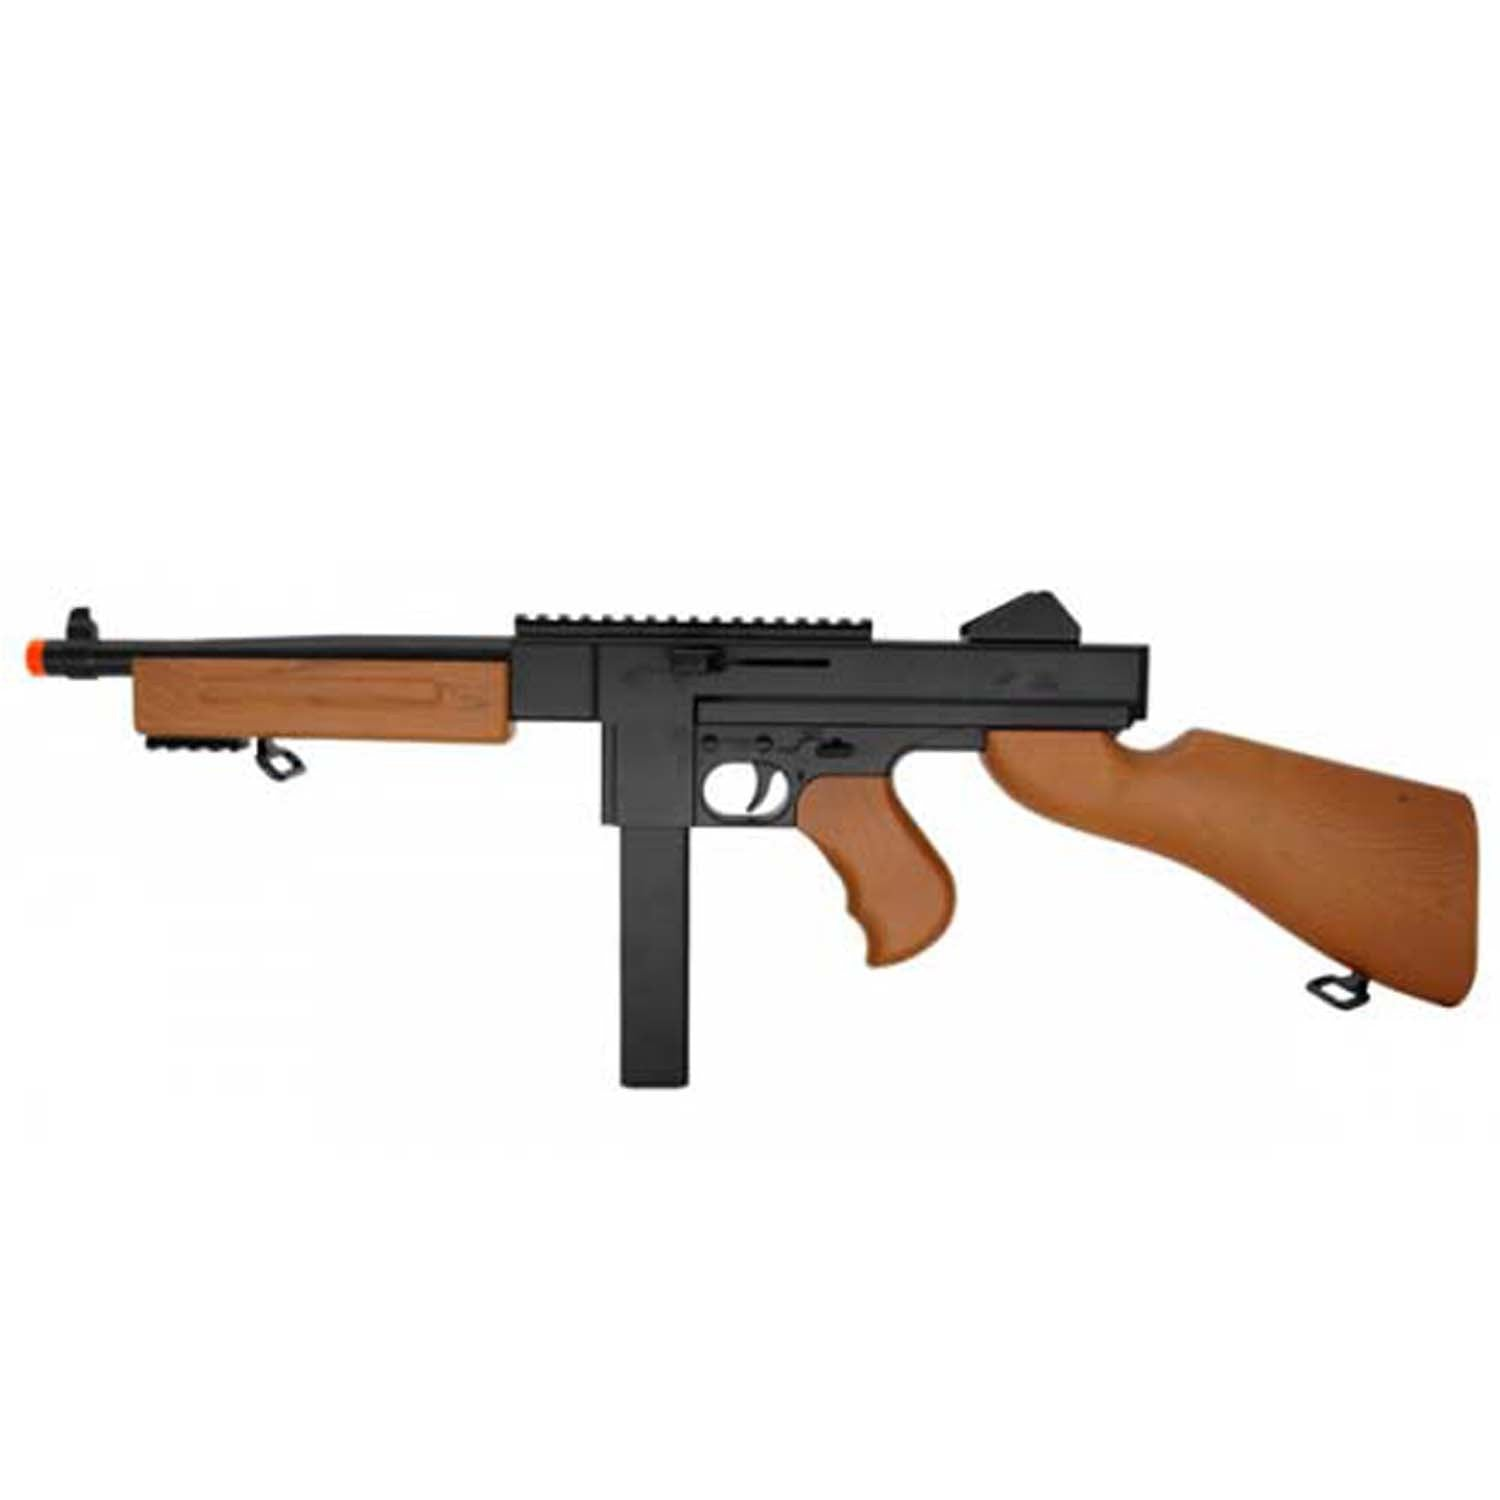 M306 Spring Thompson M1A1 Airsoft Rifle